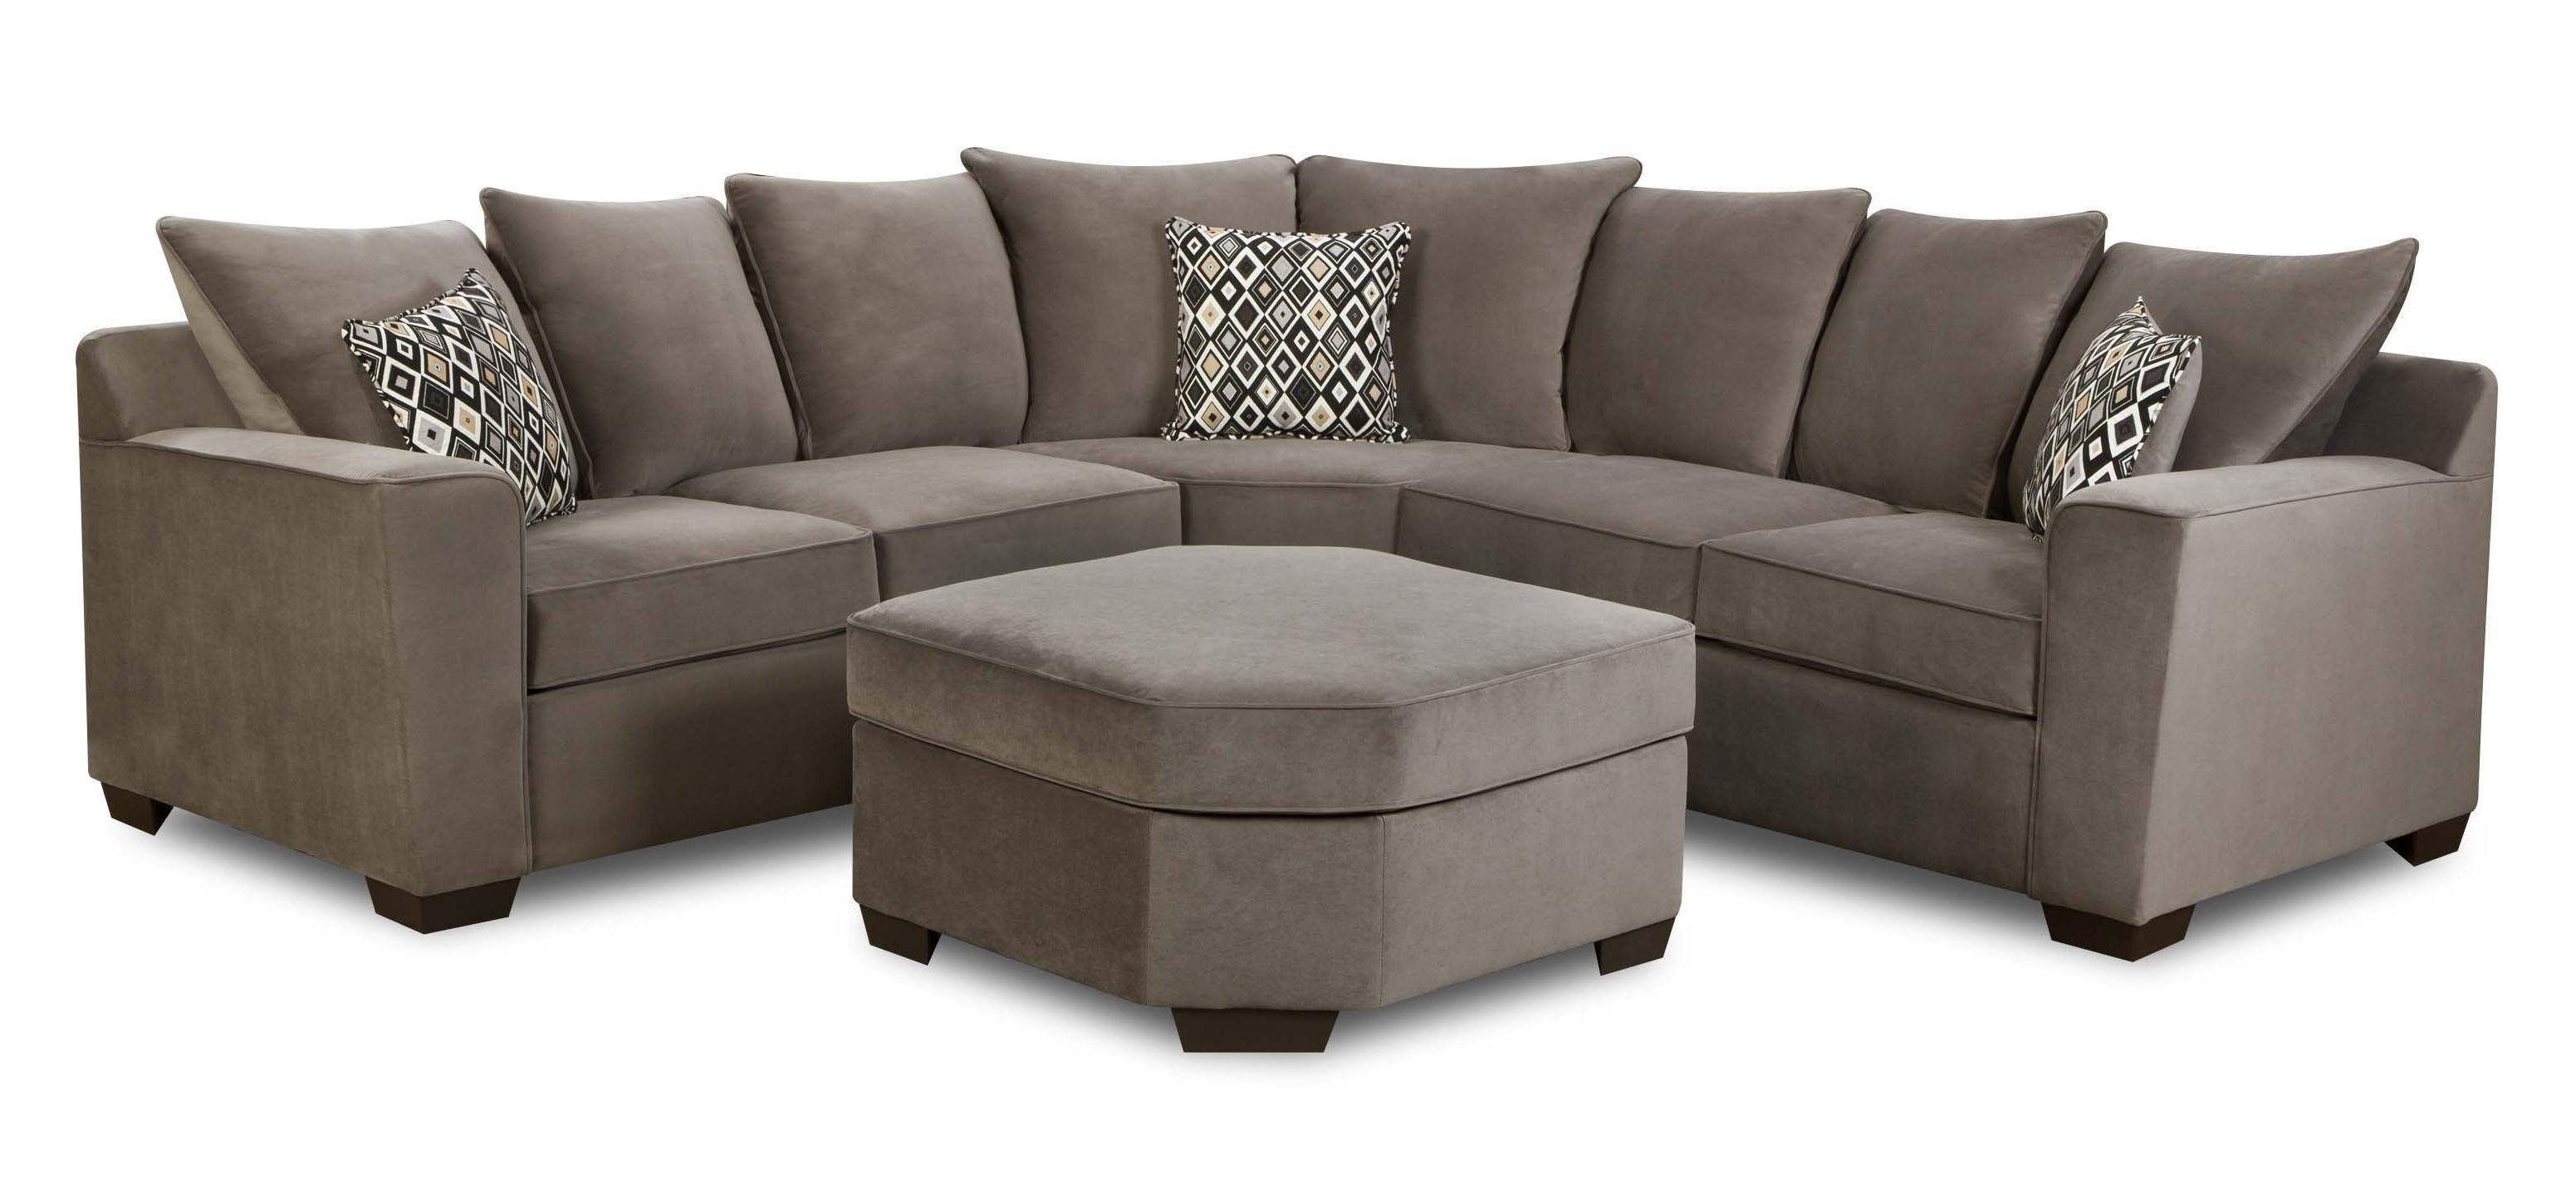 Superieur ... United Furniture Industries 9070Transitional 2 Piece Sectional Sofa ...